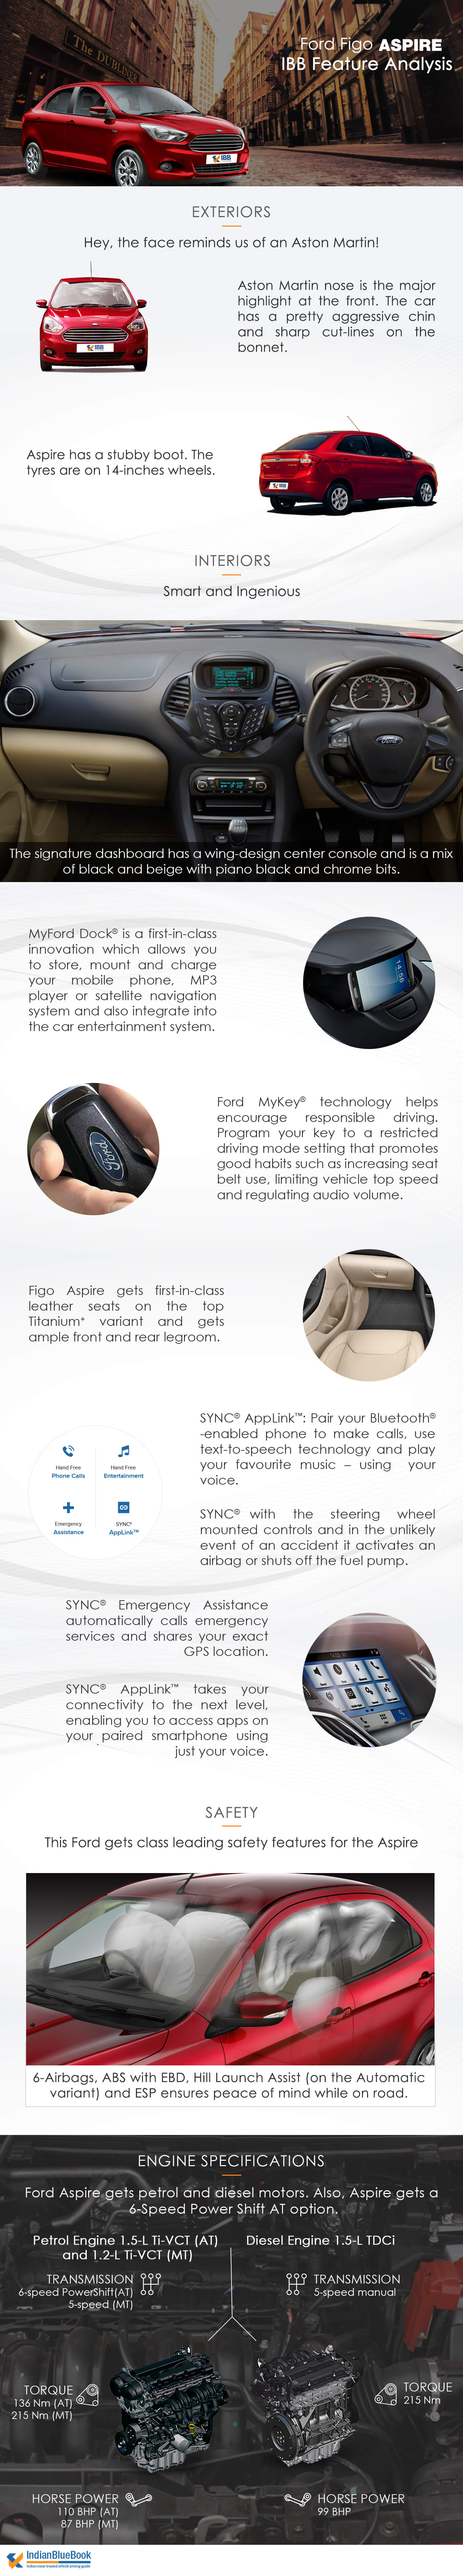 Ford Figo Apsire Feature Analysis